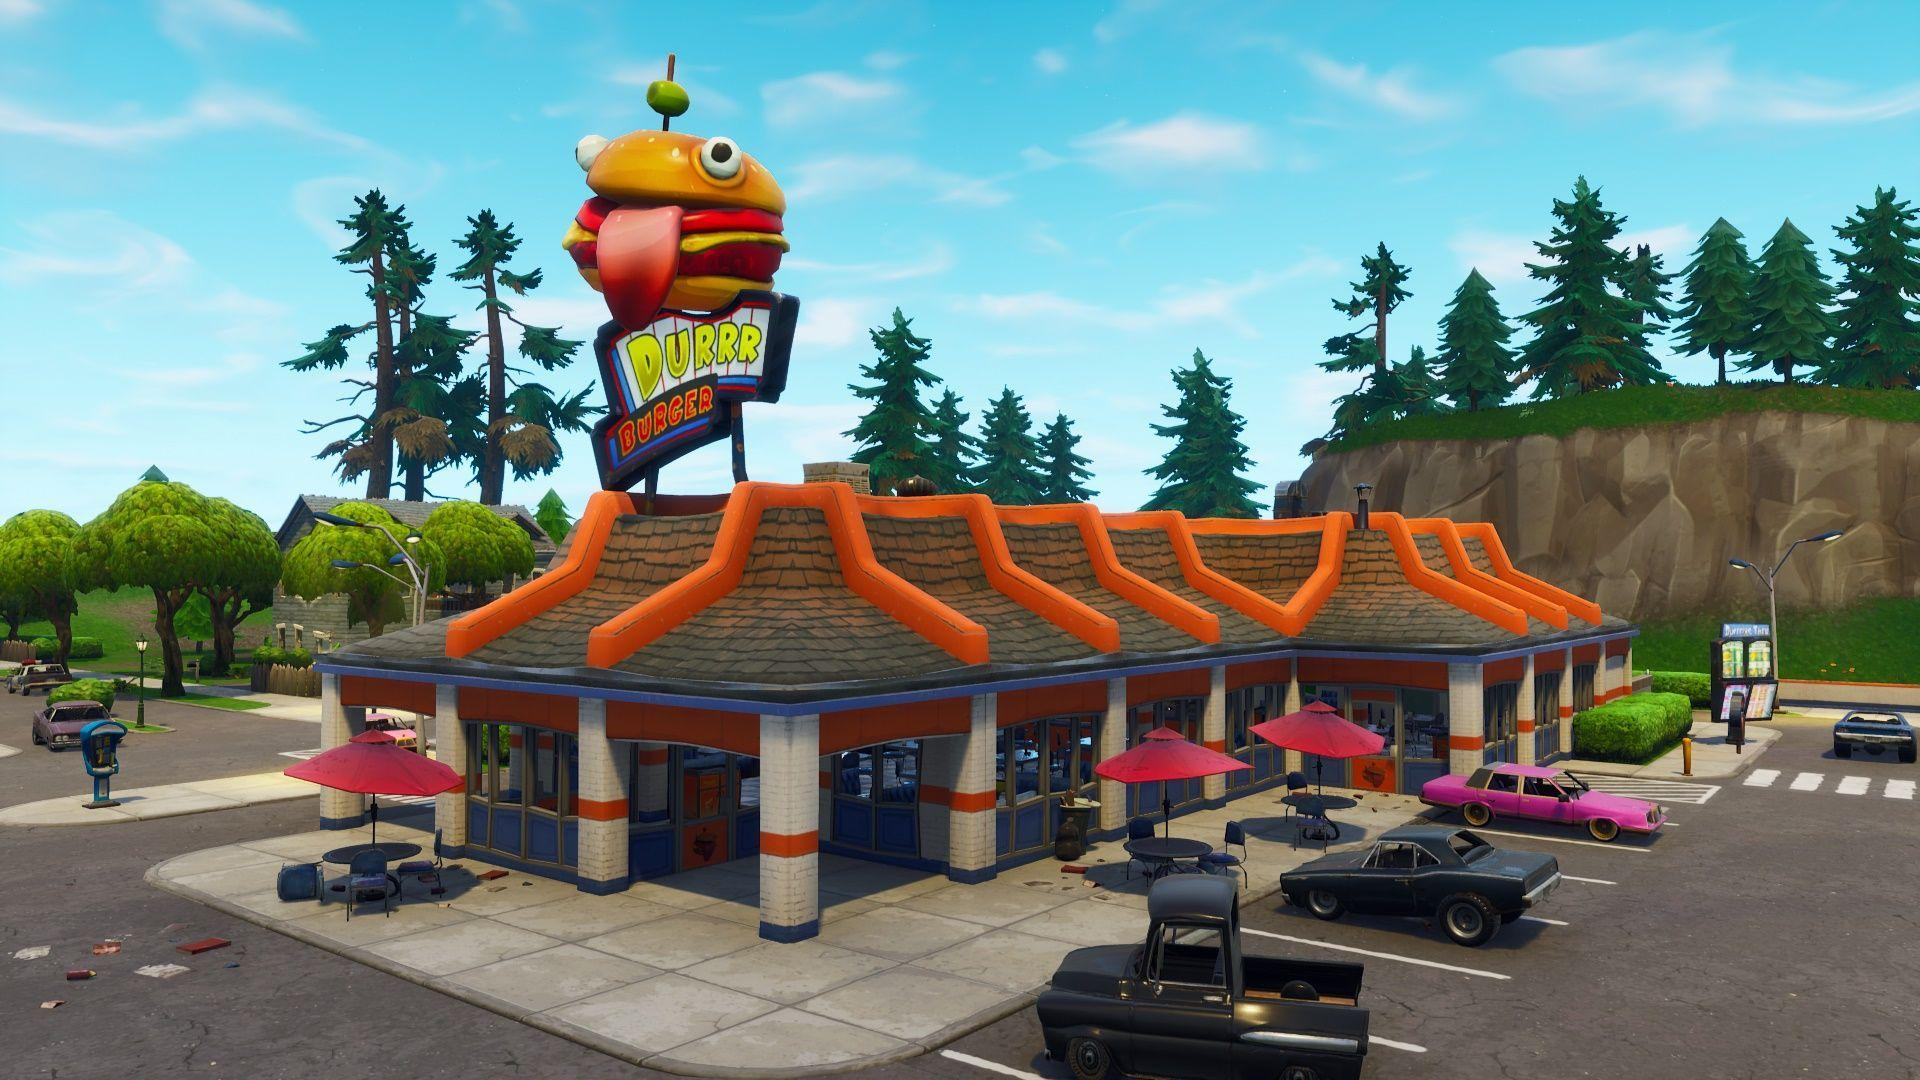 39 Best Free Fortnite Durr Burger Wallpapers - WallpaperAccess